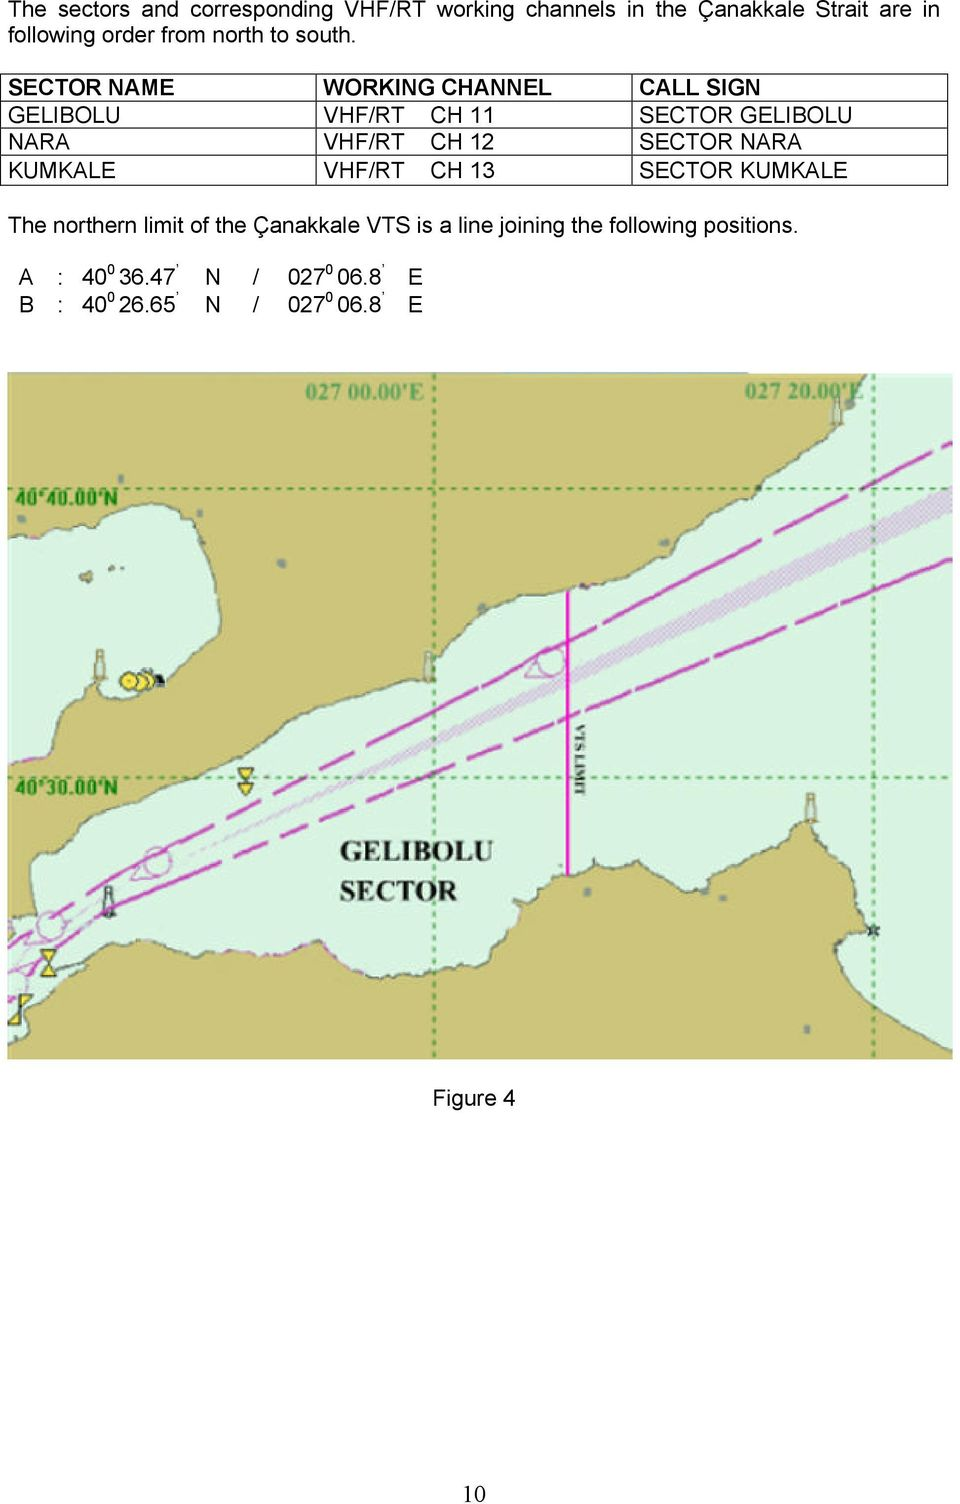 SECTOR NAME WORKING CHANNEL CALL SIGN GELIBOLU VHF/RT CH 11 SECTOR GELIBOLU NARA VHF/RT CH 12 SECTOR NARA